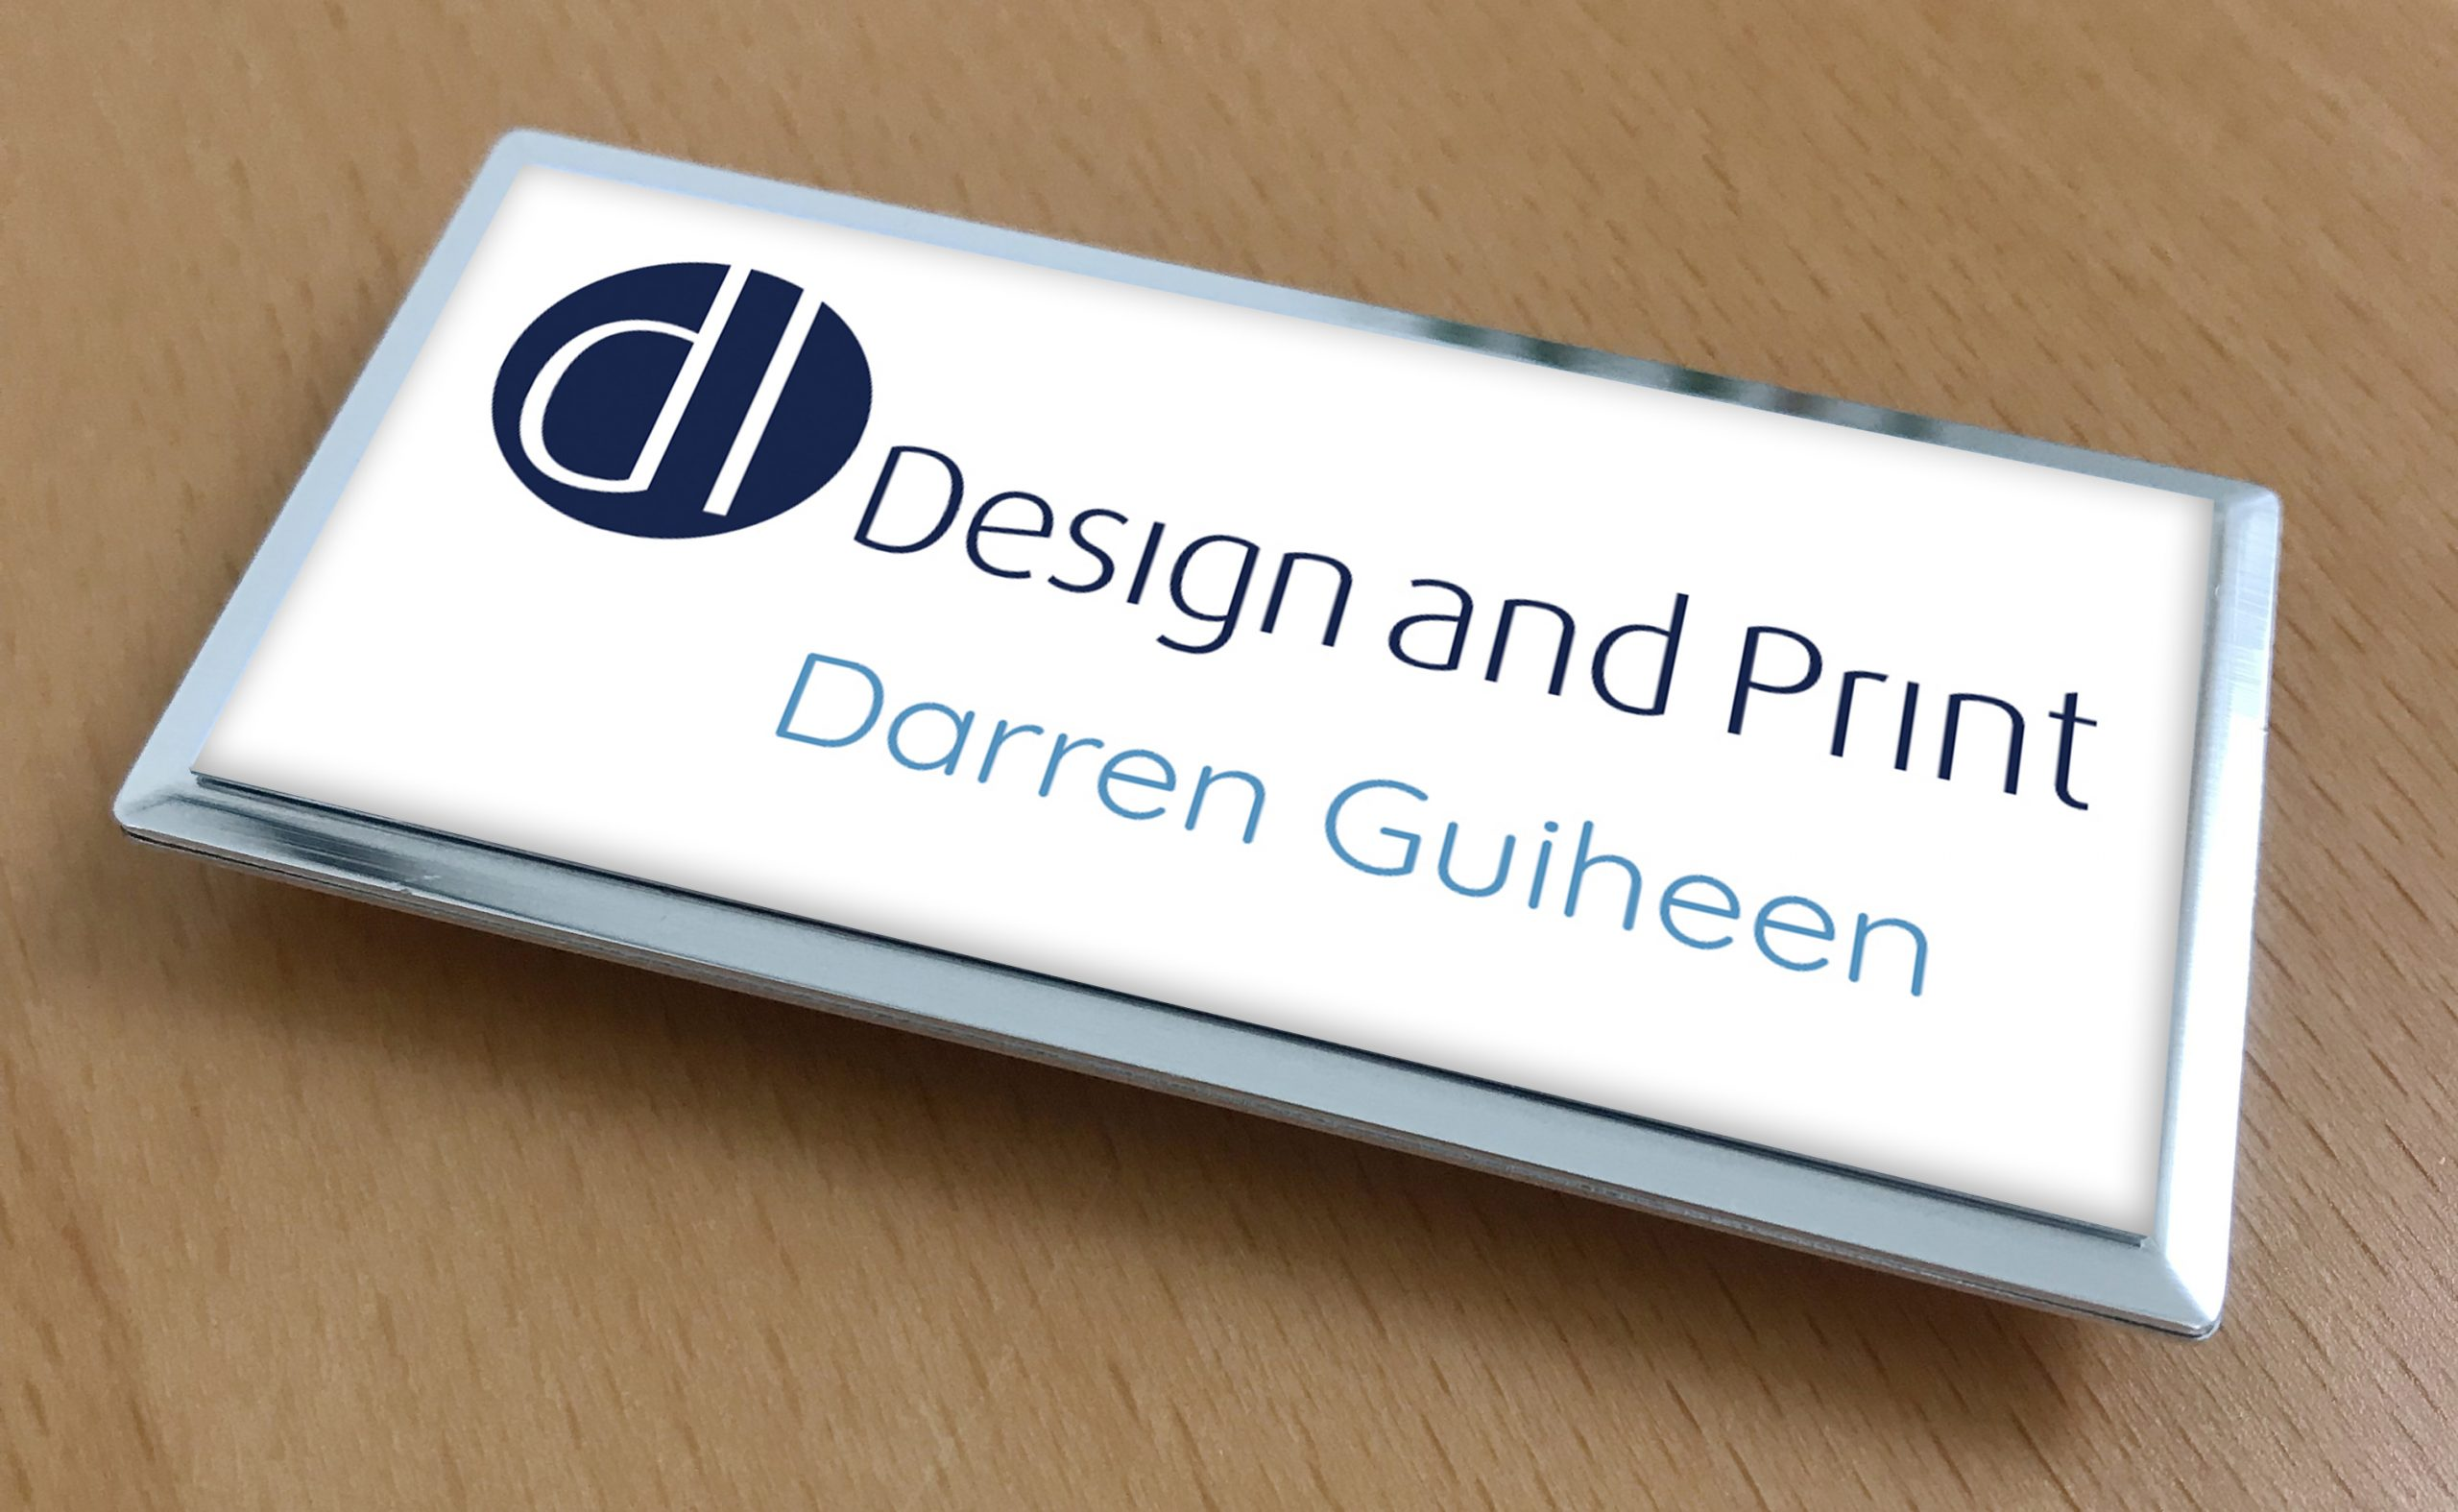 Make a great impression at a networking event with our high quality, personalised name badges